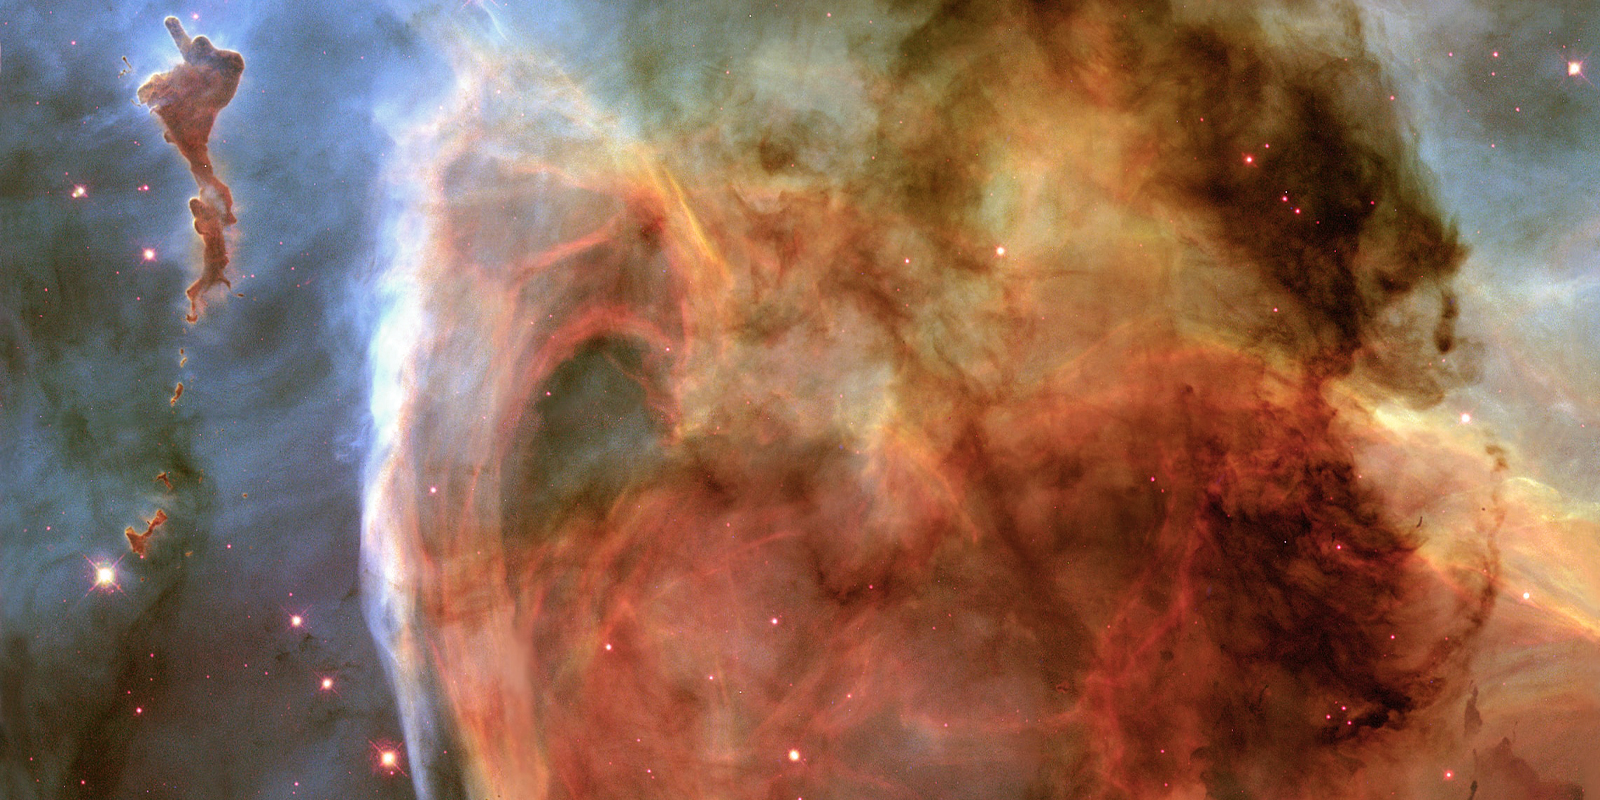 An image of beautiful nebulas in space